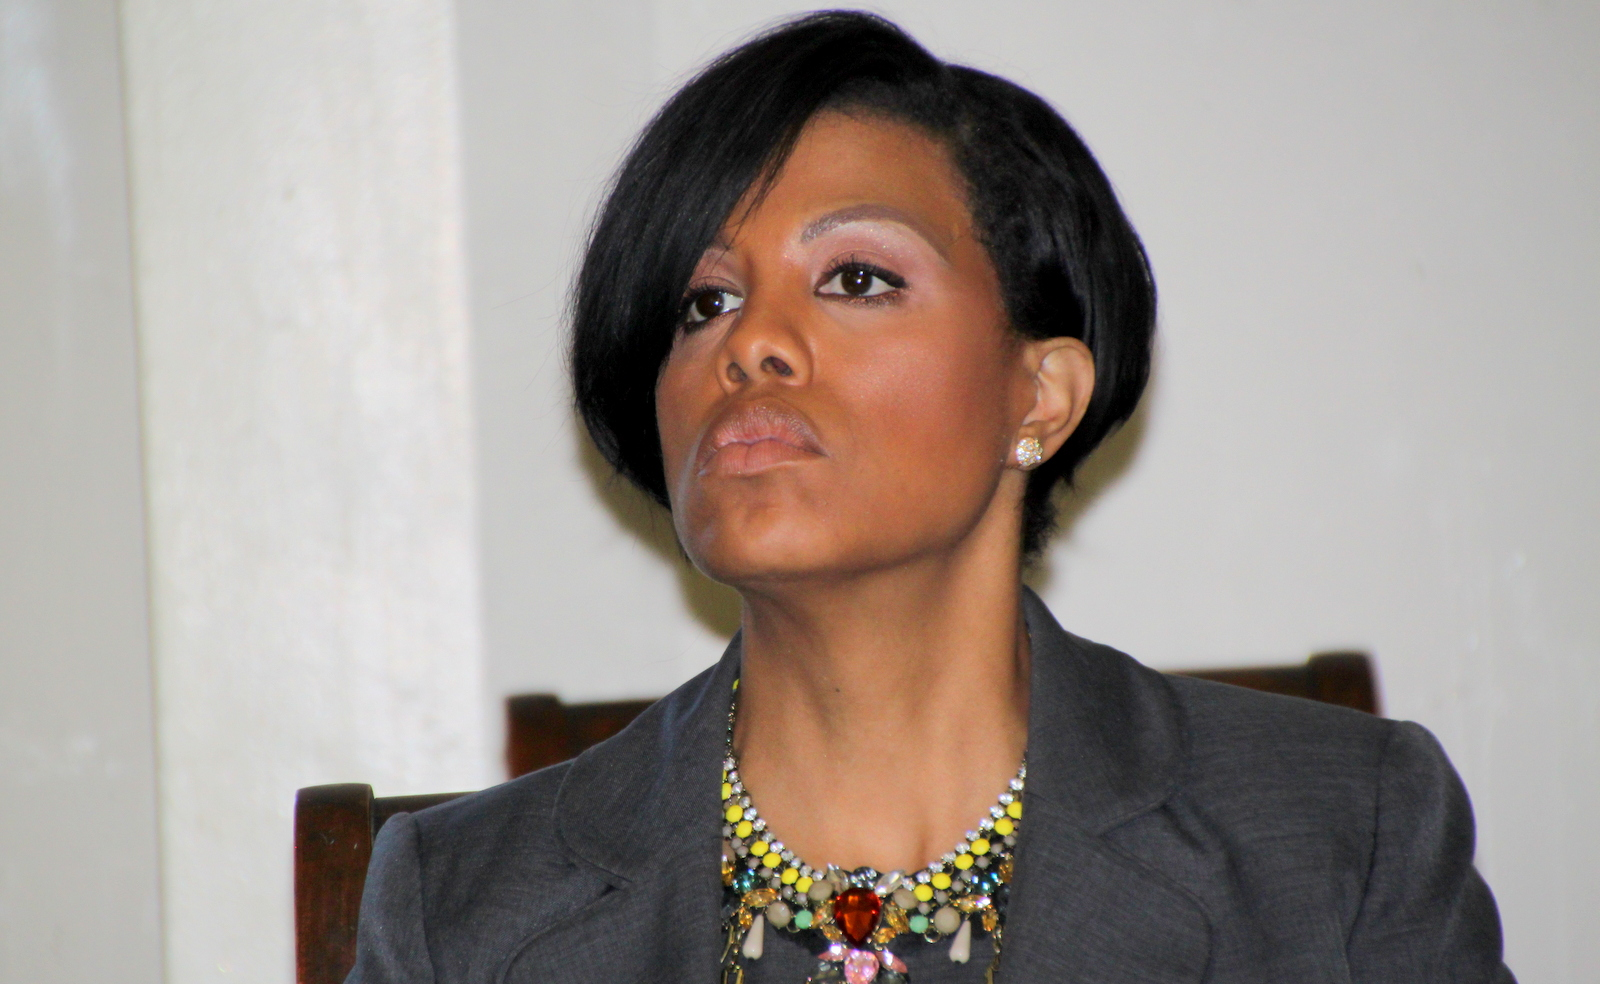 Mayor Stephanie Rawlings-Blake awaiting the start of her final Taxpayers Night. (Fern Shen)